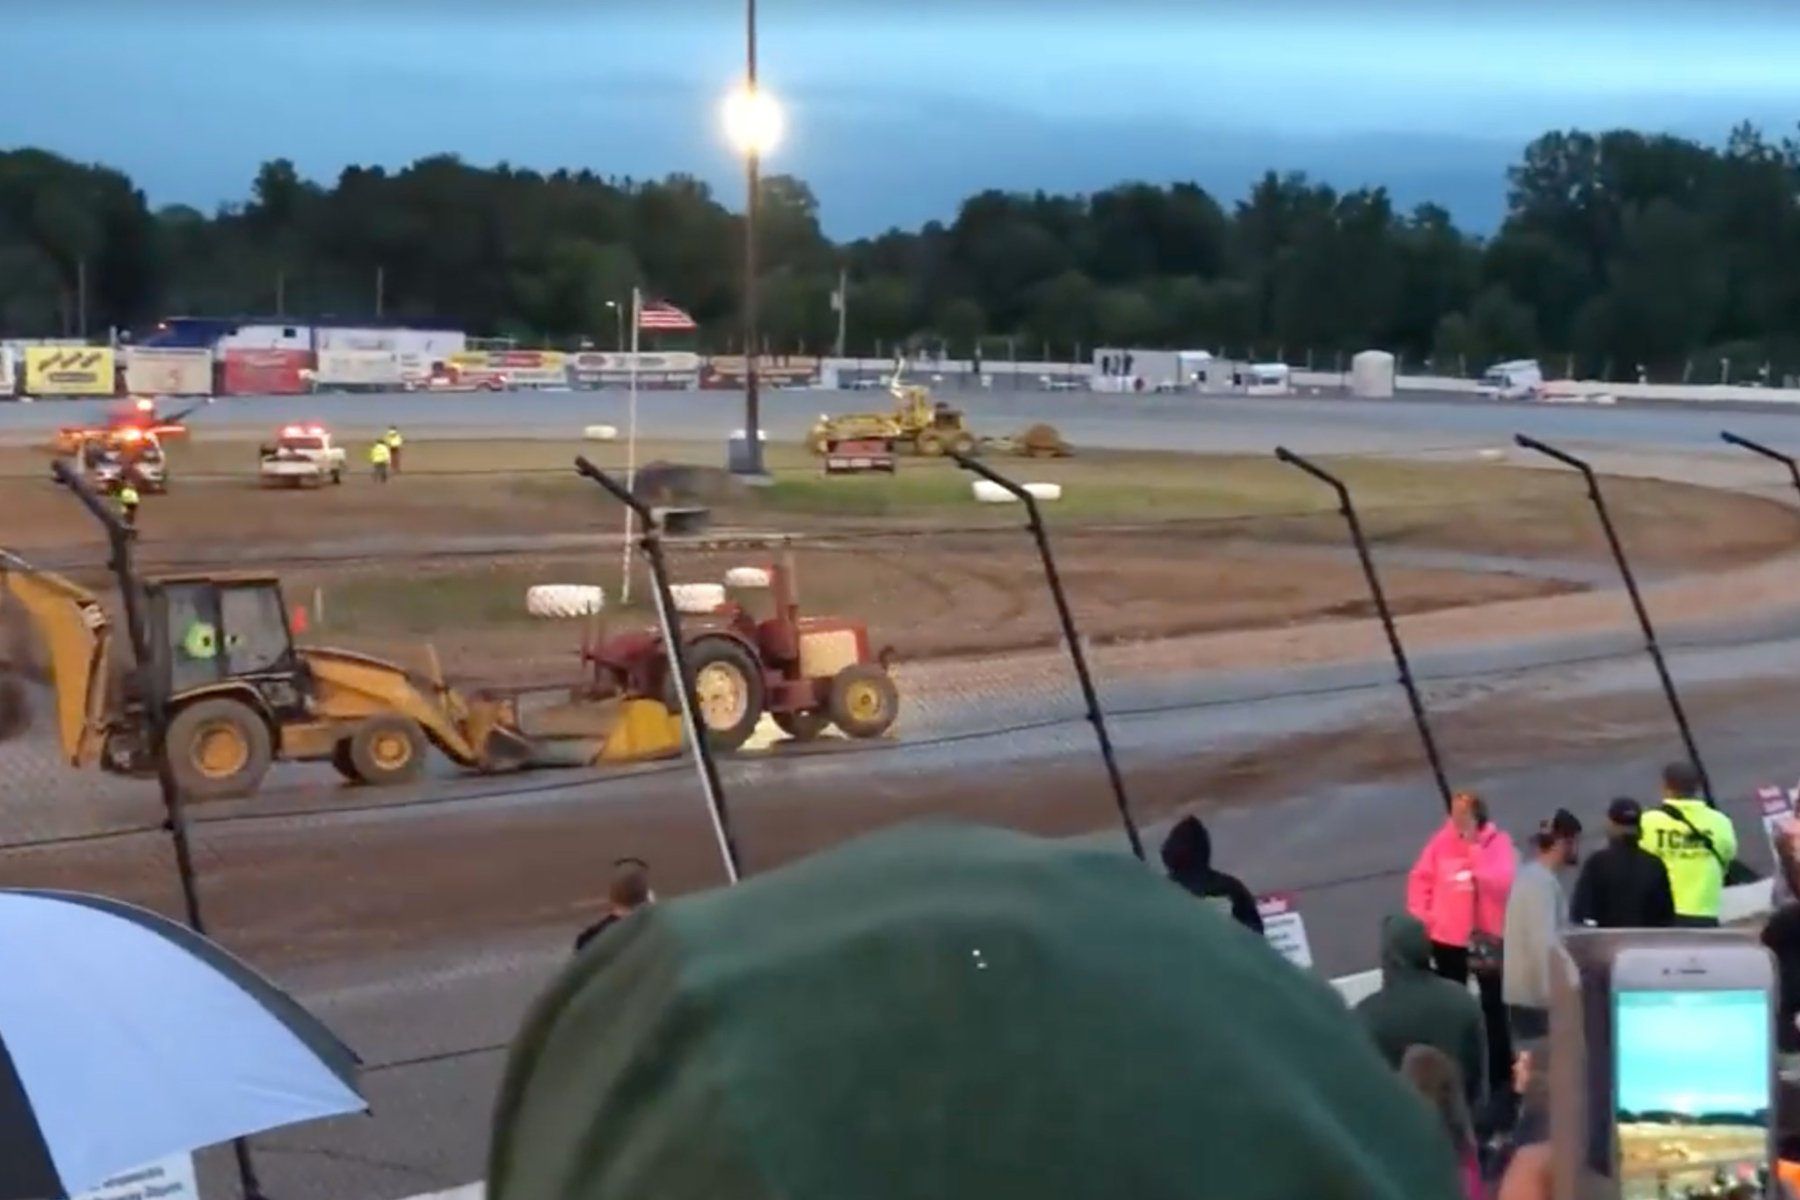 Runaway tractor at the dirt track (Video)